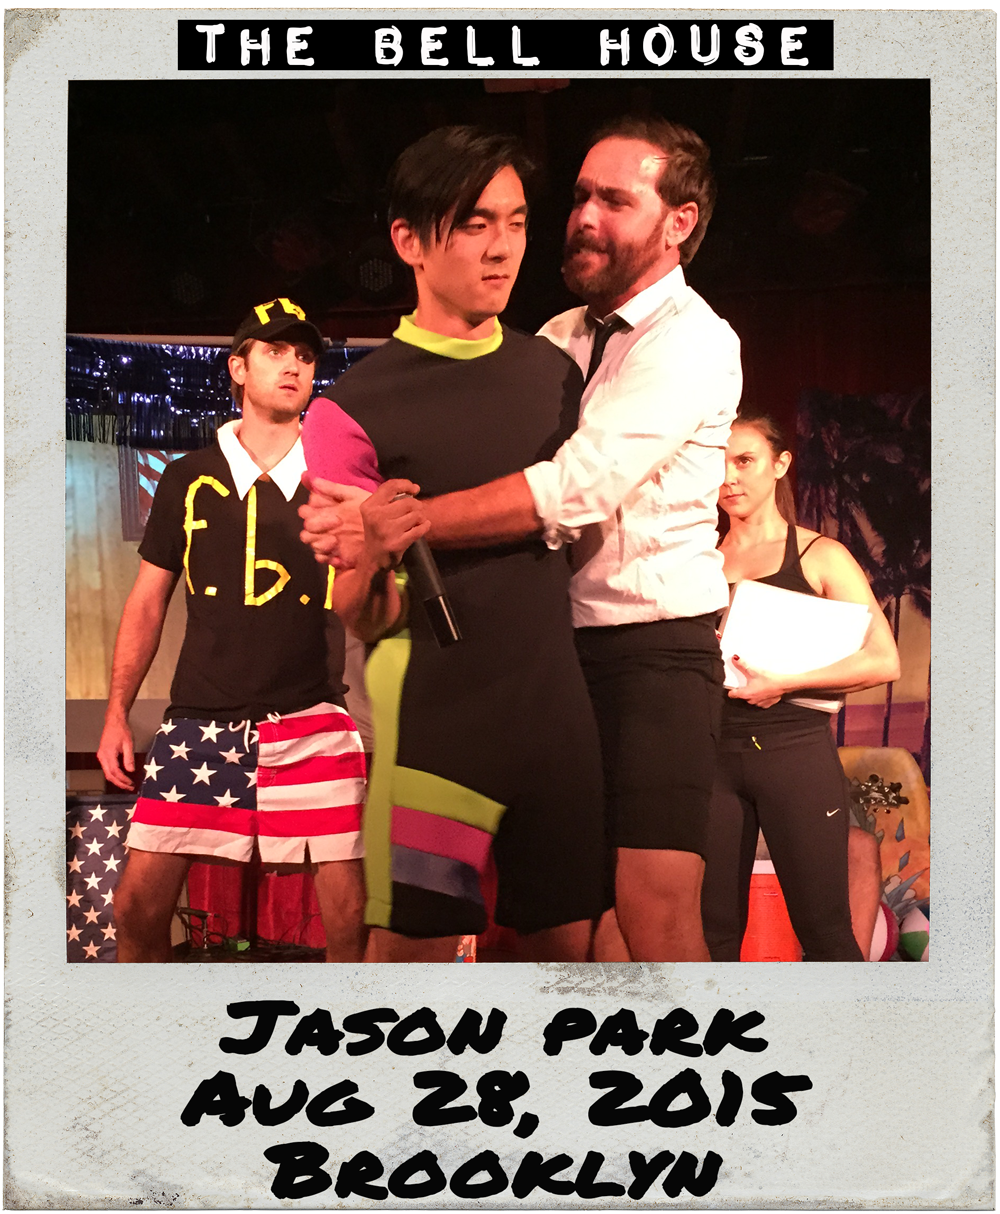 08_28_15_Jason-Park_Brooklyn.png